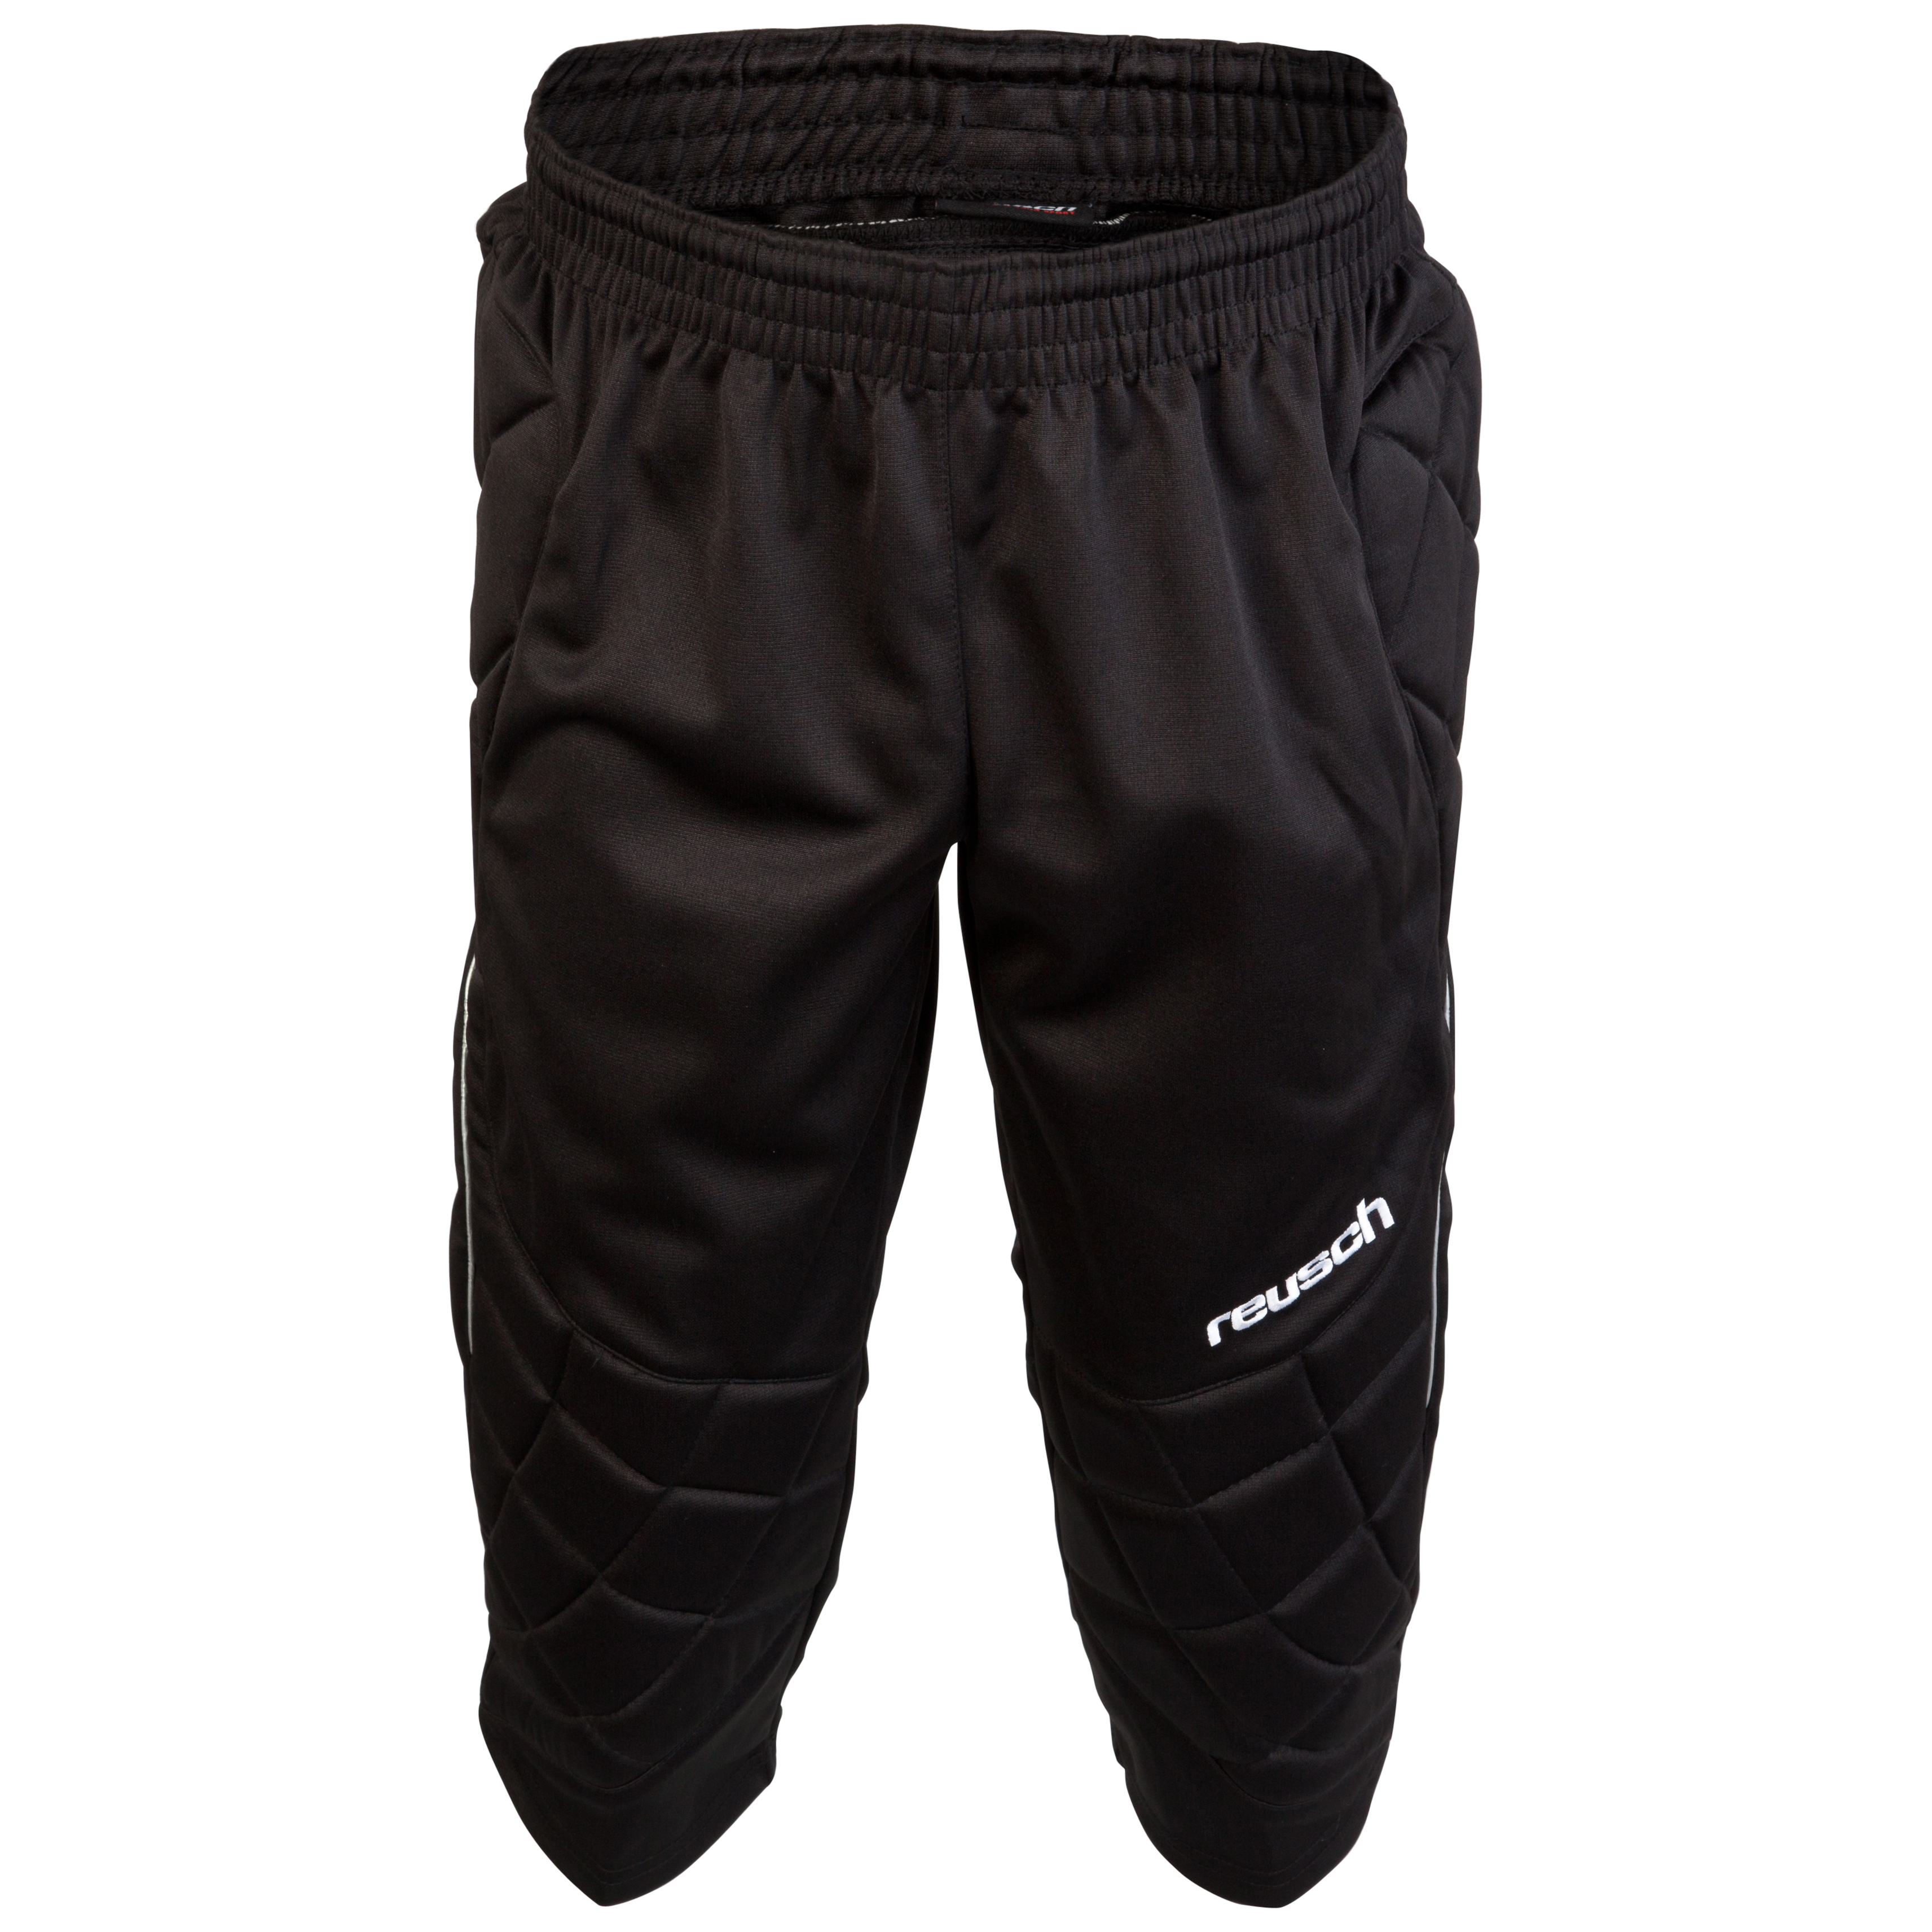 Reusch 360 Protection 3/4 Goalkeeping Pants-Black